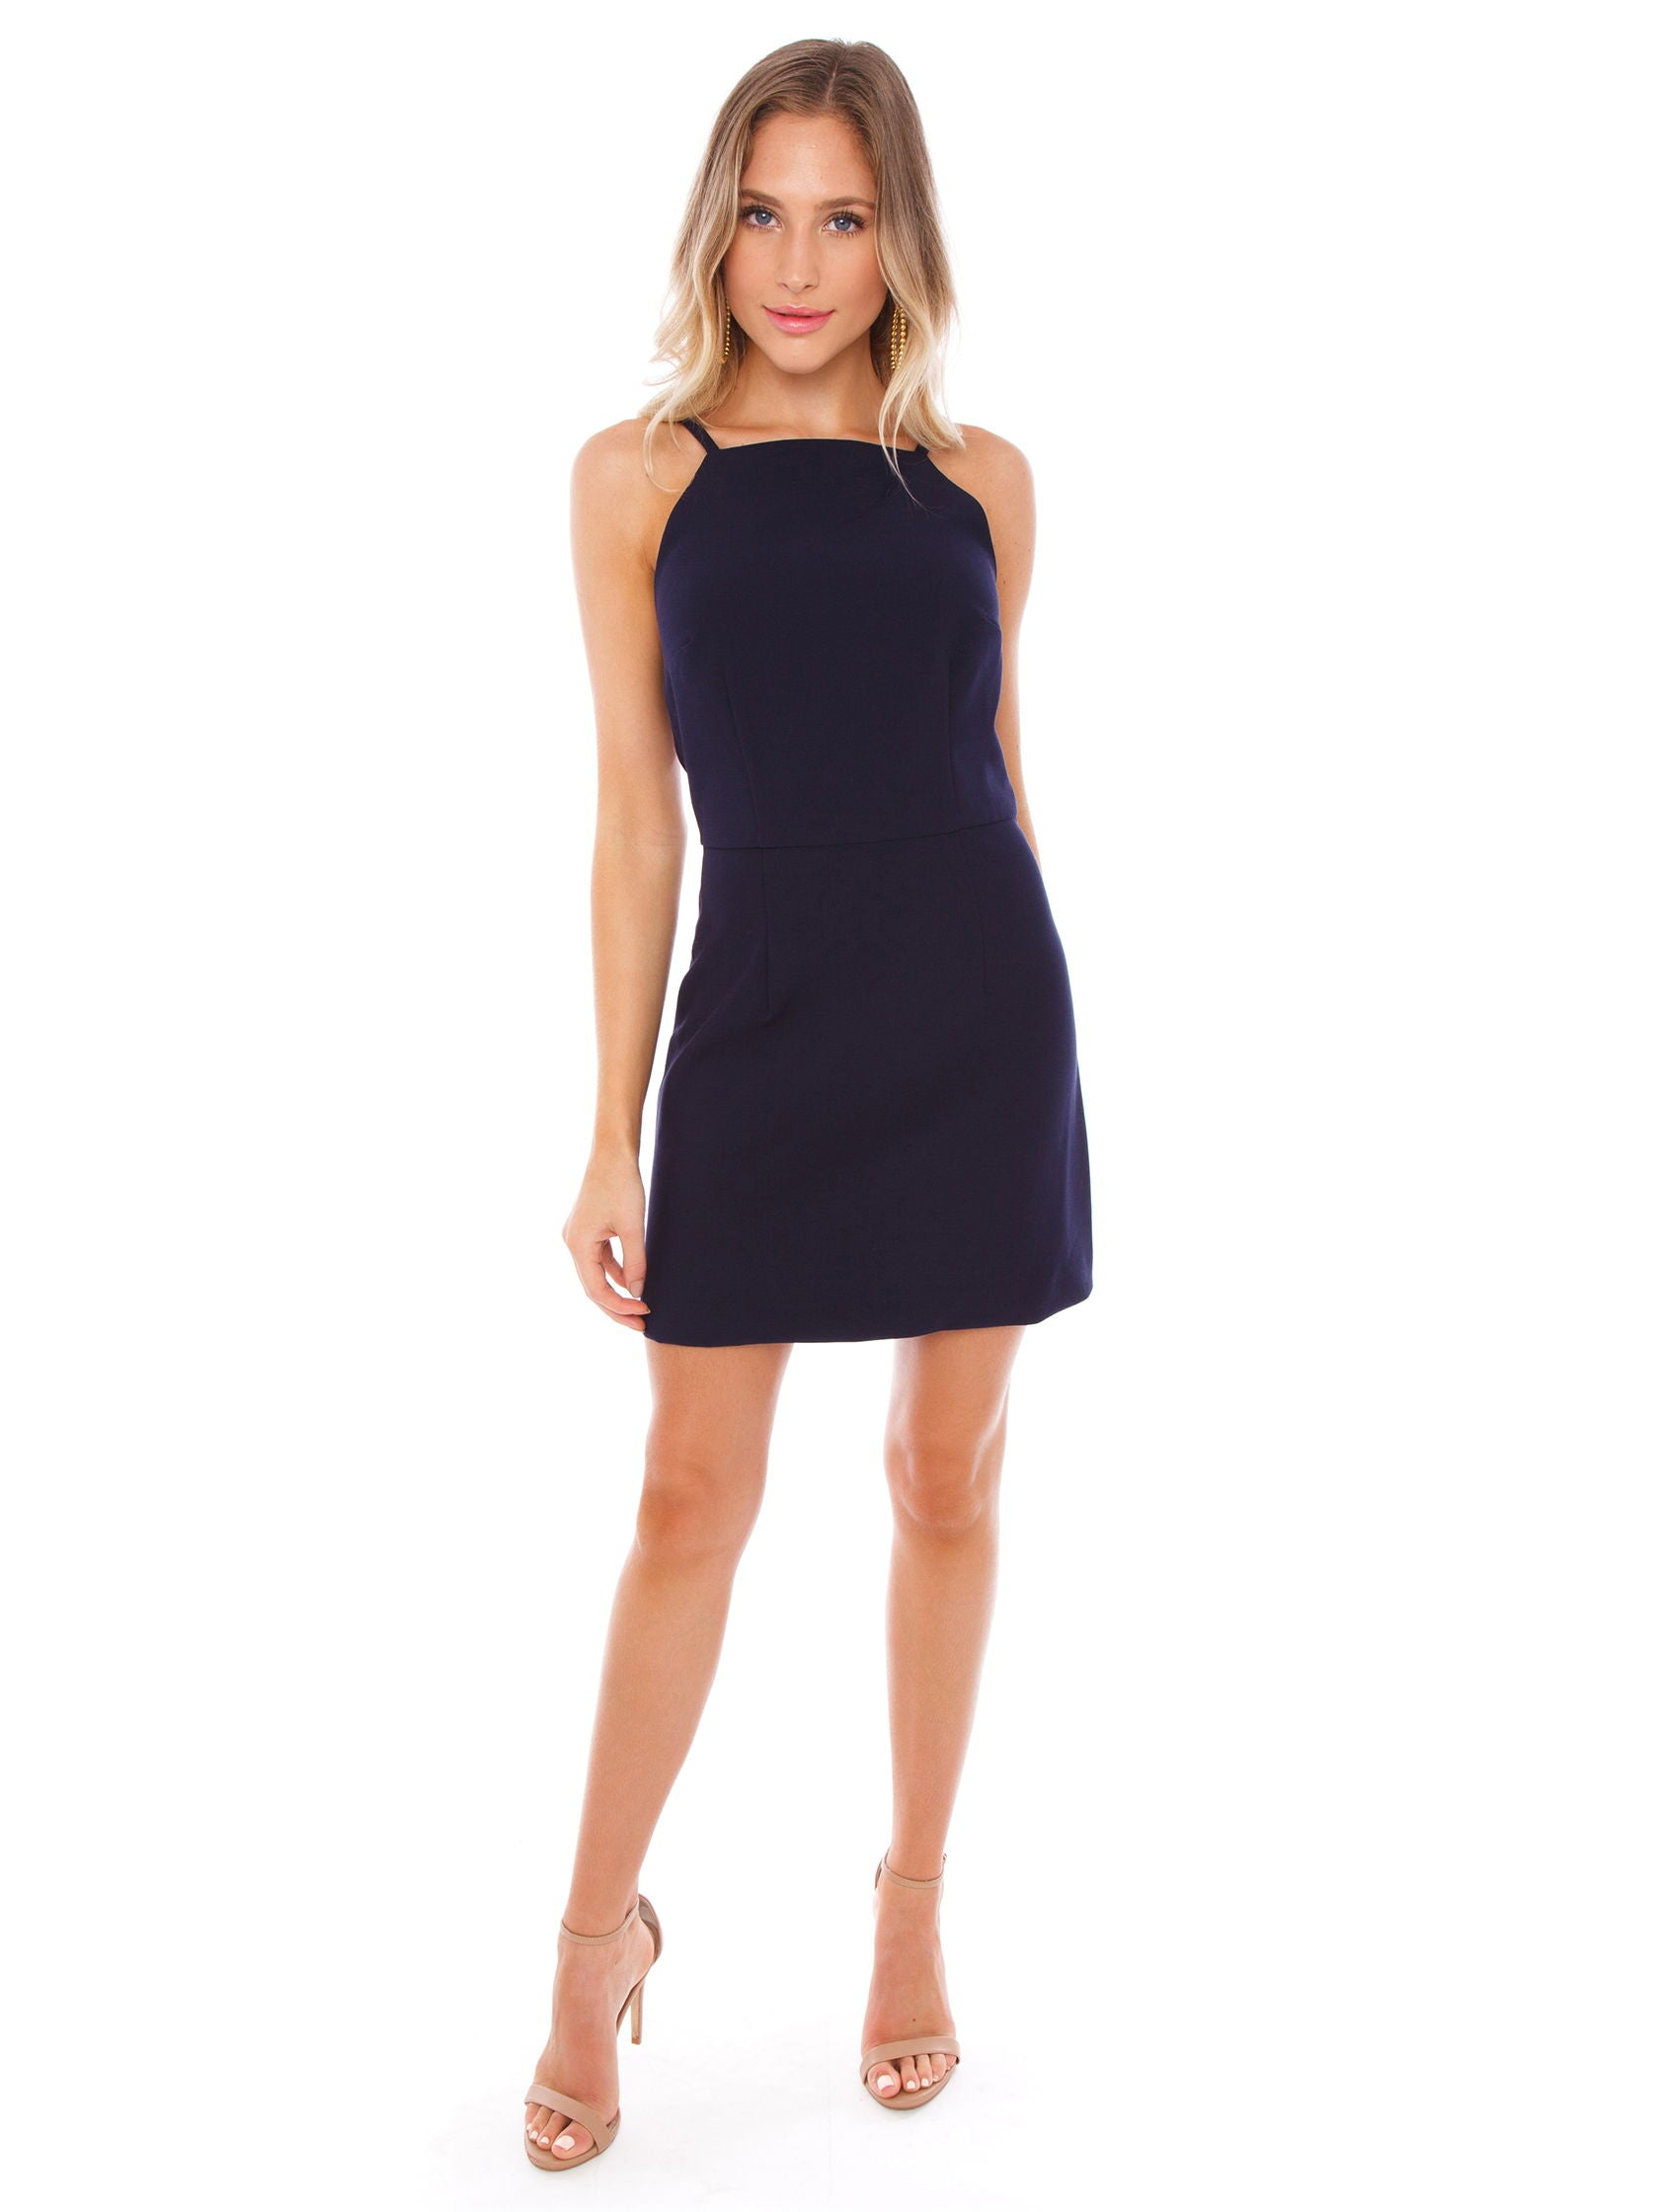 a314d93f5f1 Girl outfit in a dress rental from French Connection called Whisper Light  Square Neck Sheath Dress